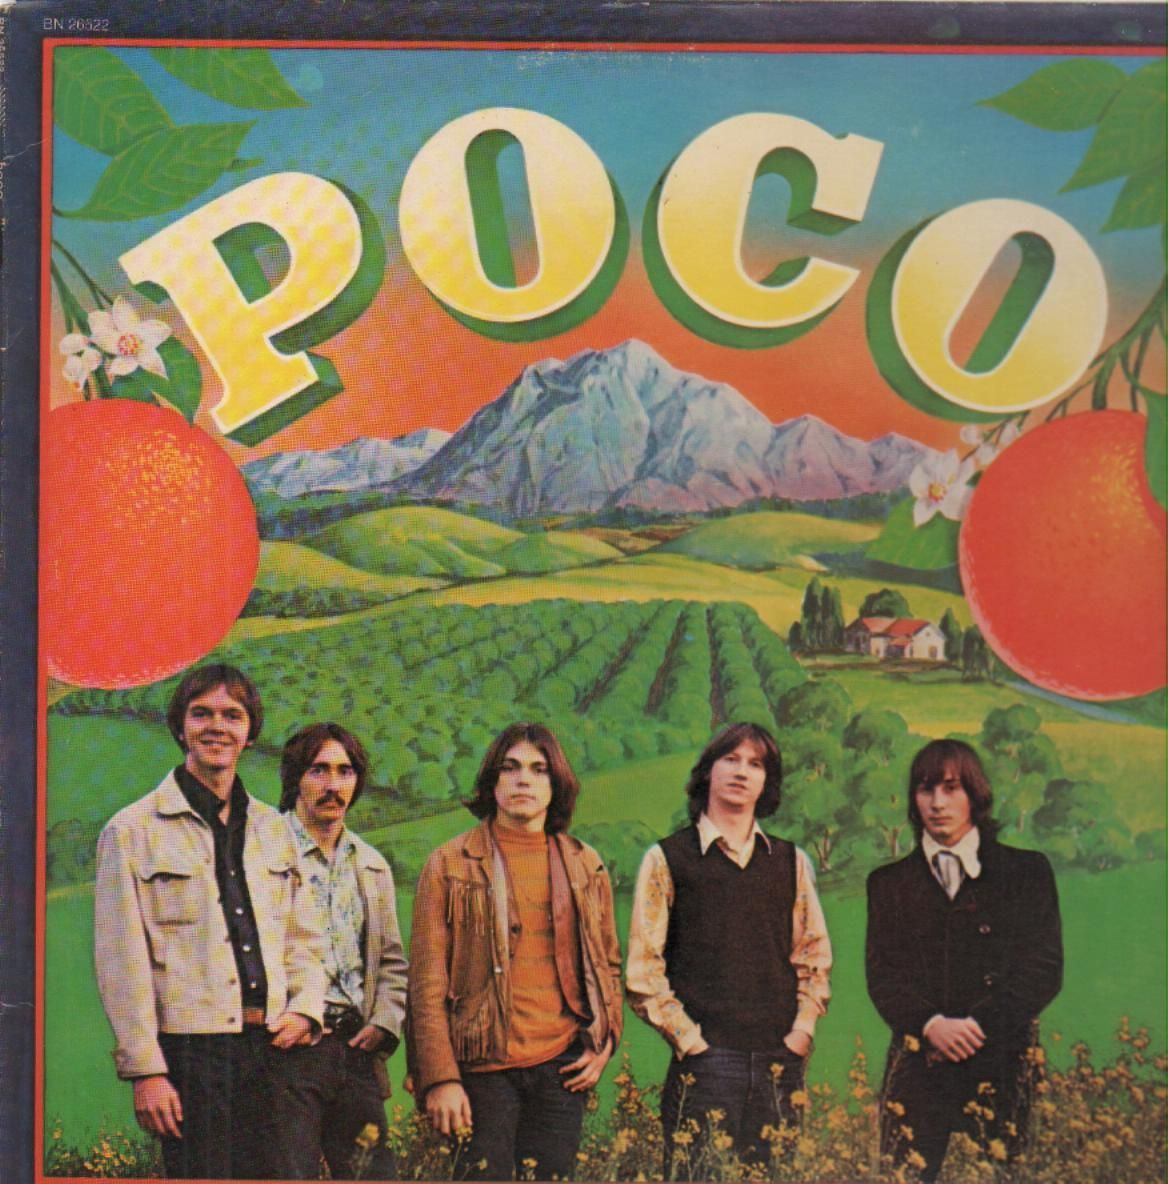 poco poco rock and roll album cover art a work in. Black Bedroom Furniture Sets. Home Design Ideas